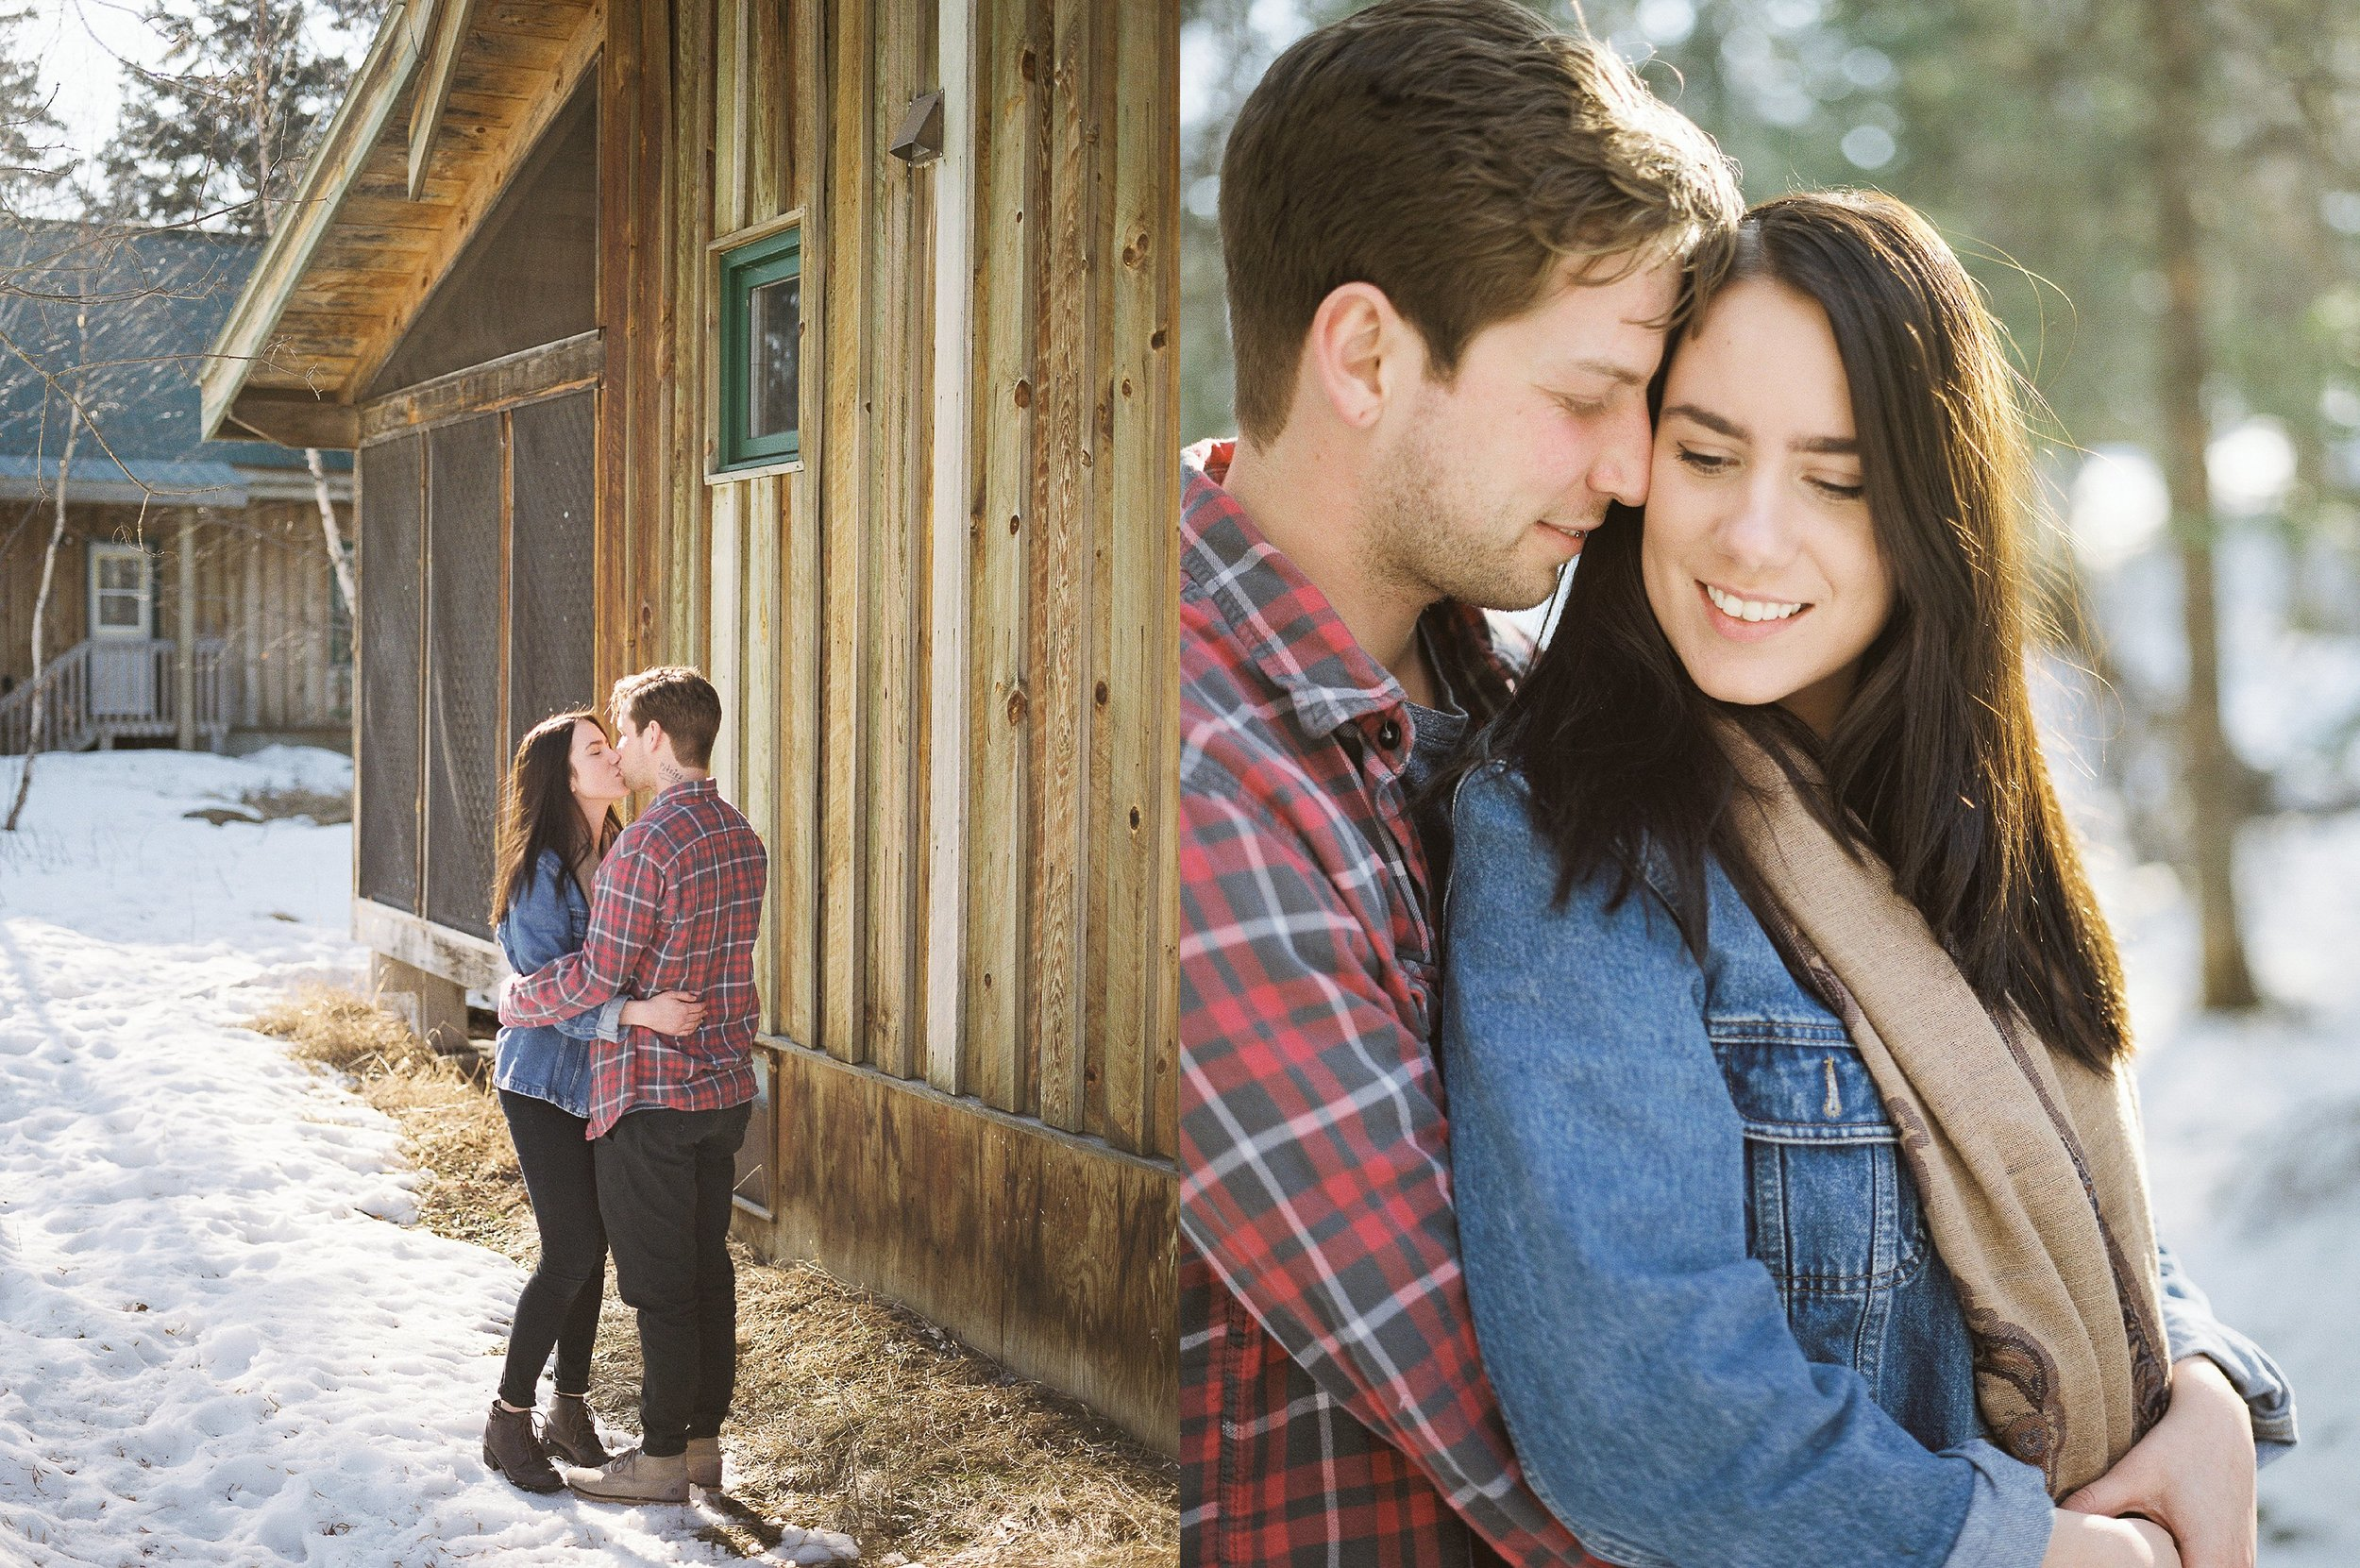 Cabin engagement session | Canadian film photographer Keila Marie Photography | Engagement Session outfit inspiration